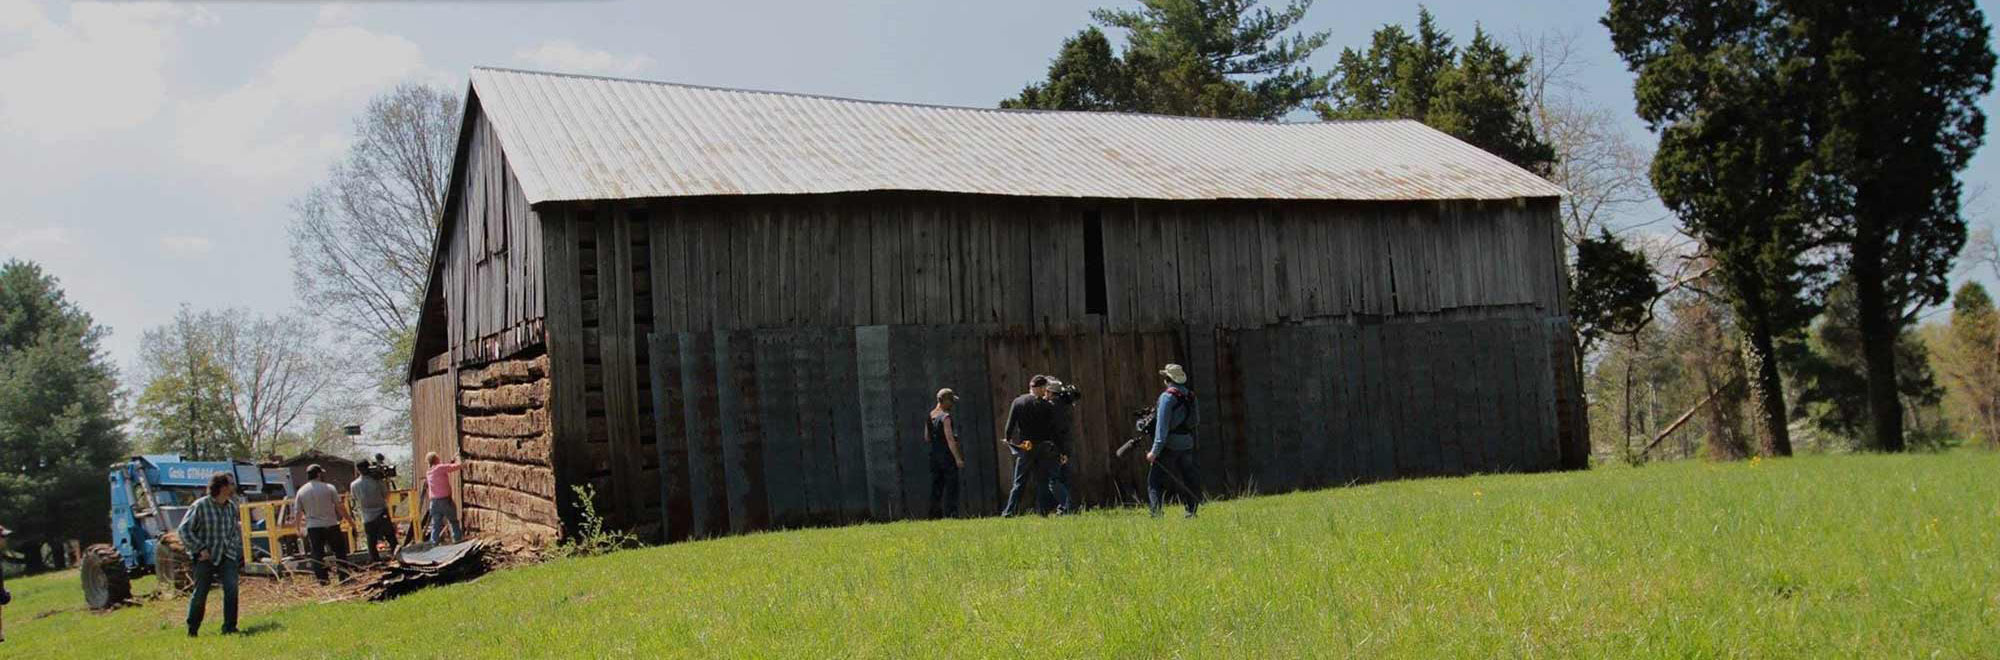 Sell Your Building - Barnwood Living